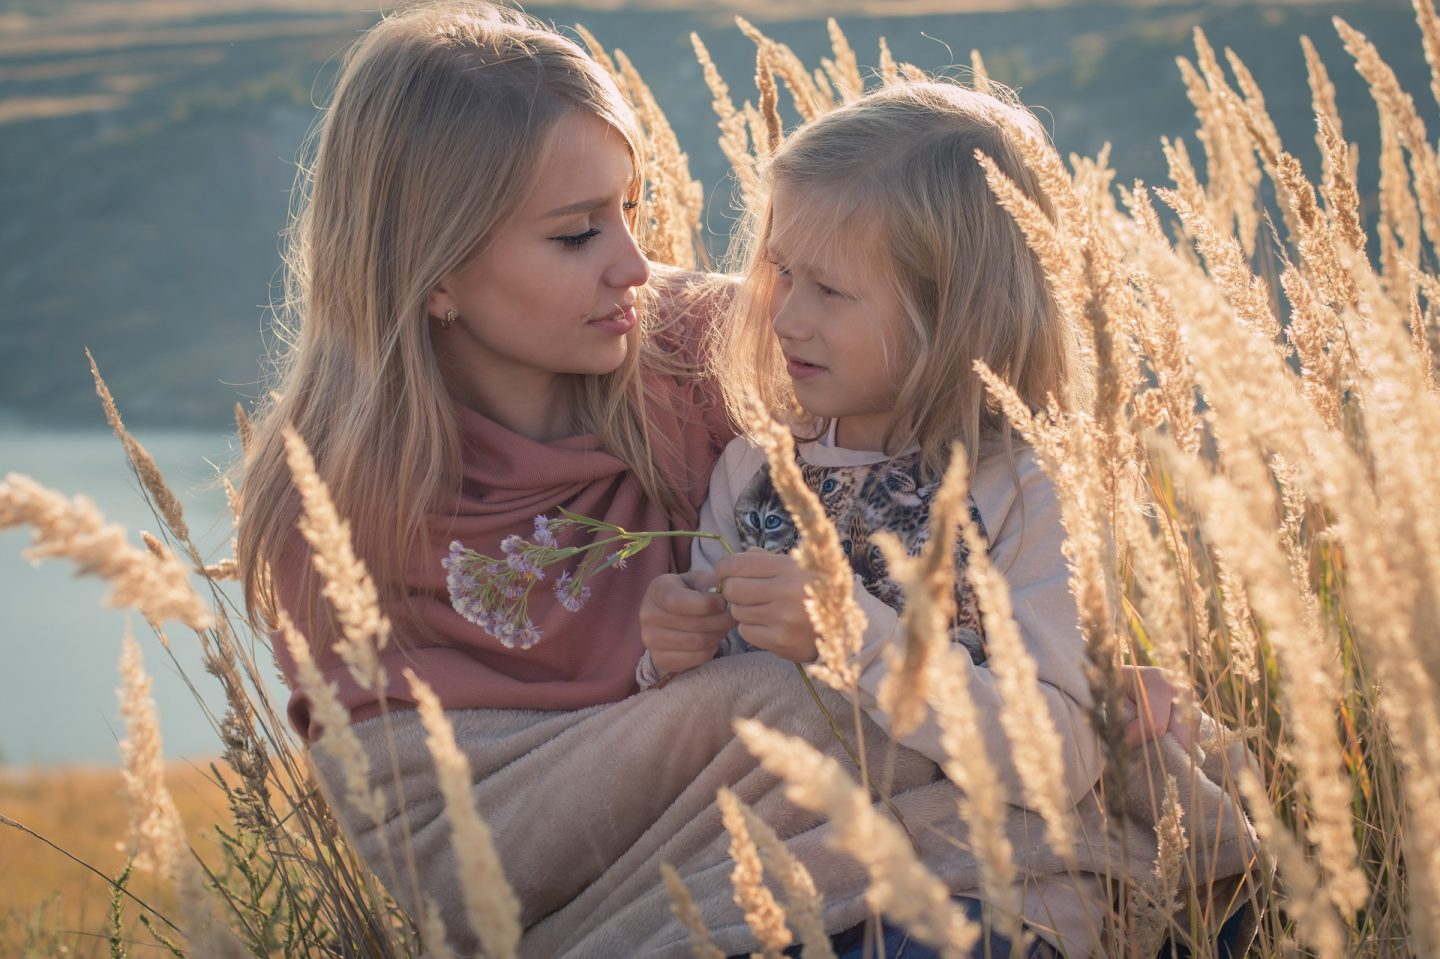 A mother and daughter sit amongst some wheat in golden light